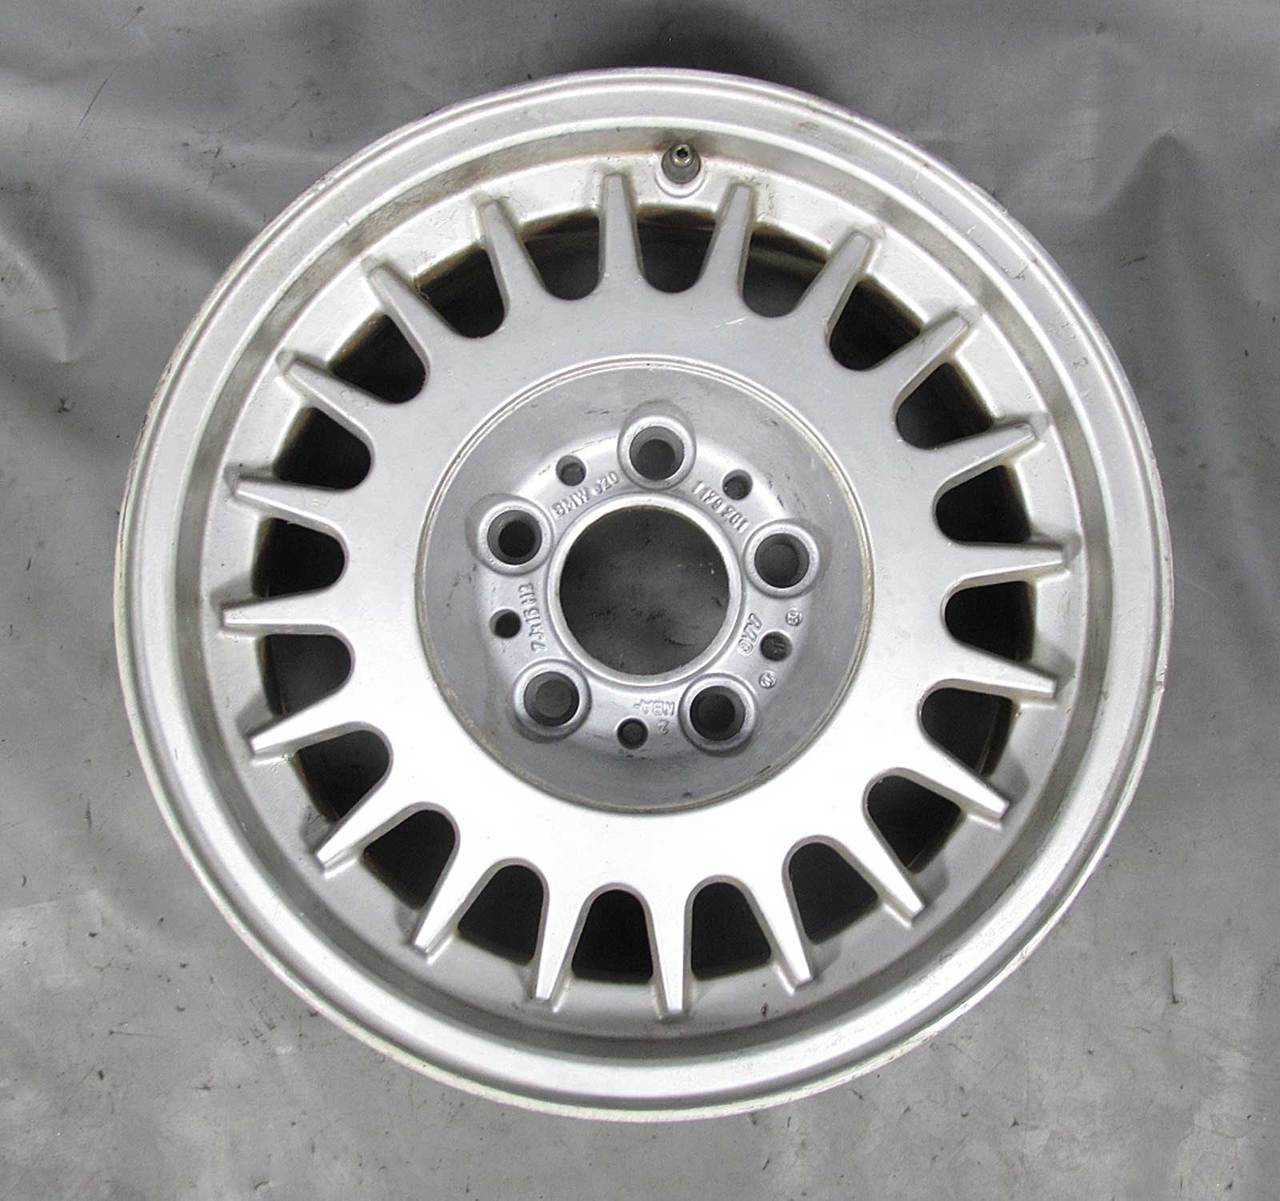 Bmw E34 5 Series E32 15 Style 2 Bottle Cap Factory Alloy Wheel 1988